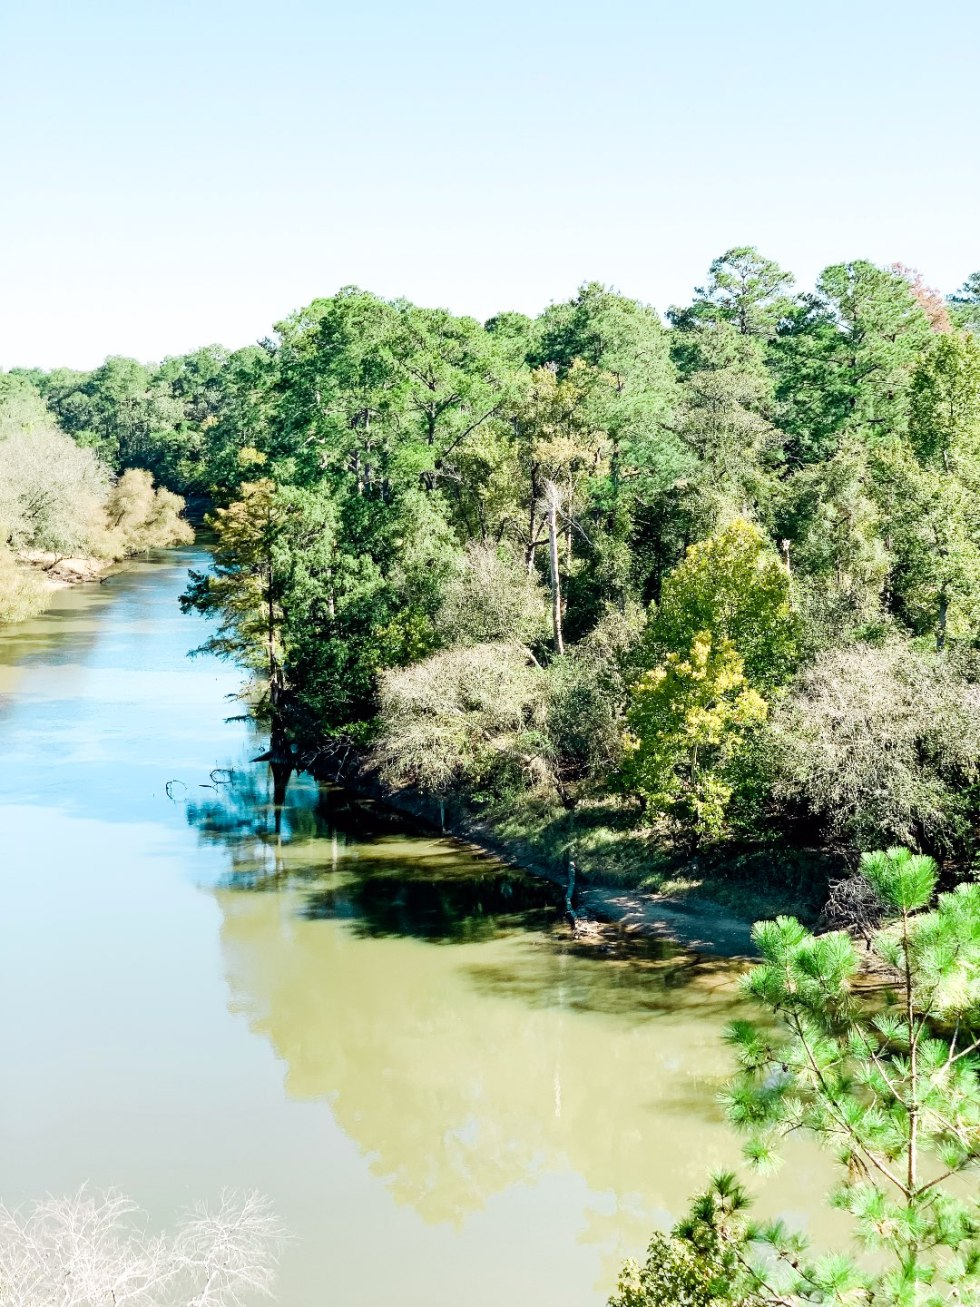 Eastern North Carolina Travel Guide: Top 10 Things to Do in Goldsboro NC - I'm Fixin' To - @mbg0112 | Eastern North Carolina Travel Guide: Top 10 Things to Do in Goldsboro NC by popular North Carolina blog, I'm Fixin' To: image of Neuse.